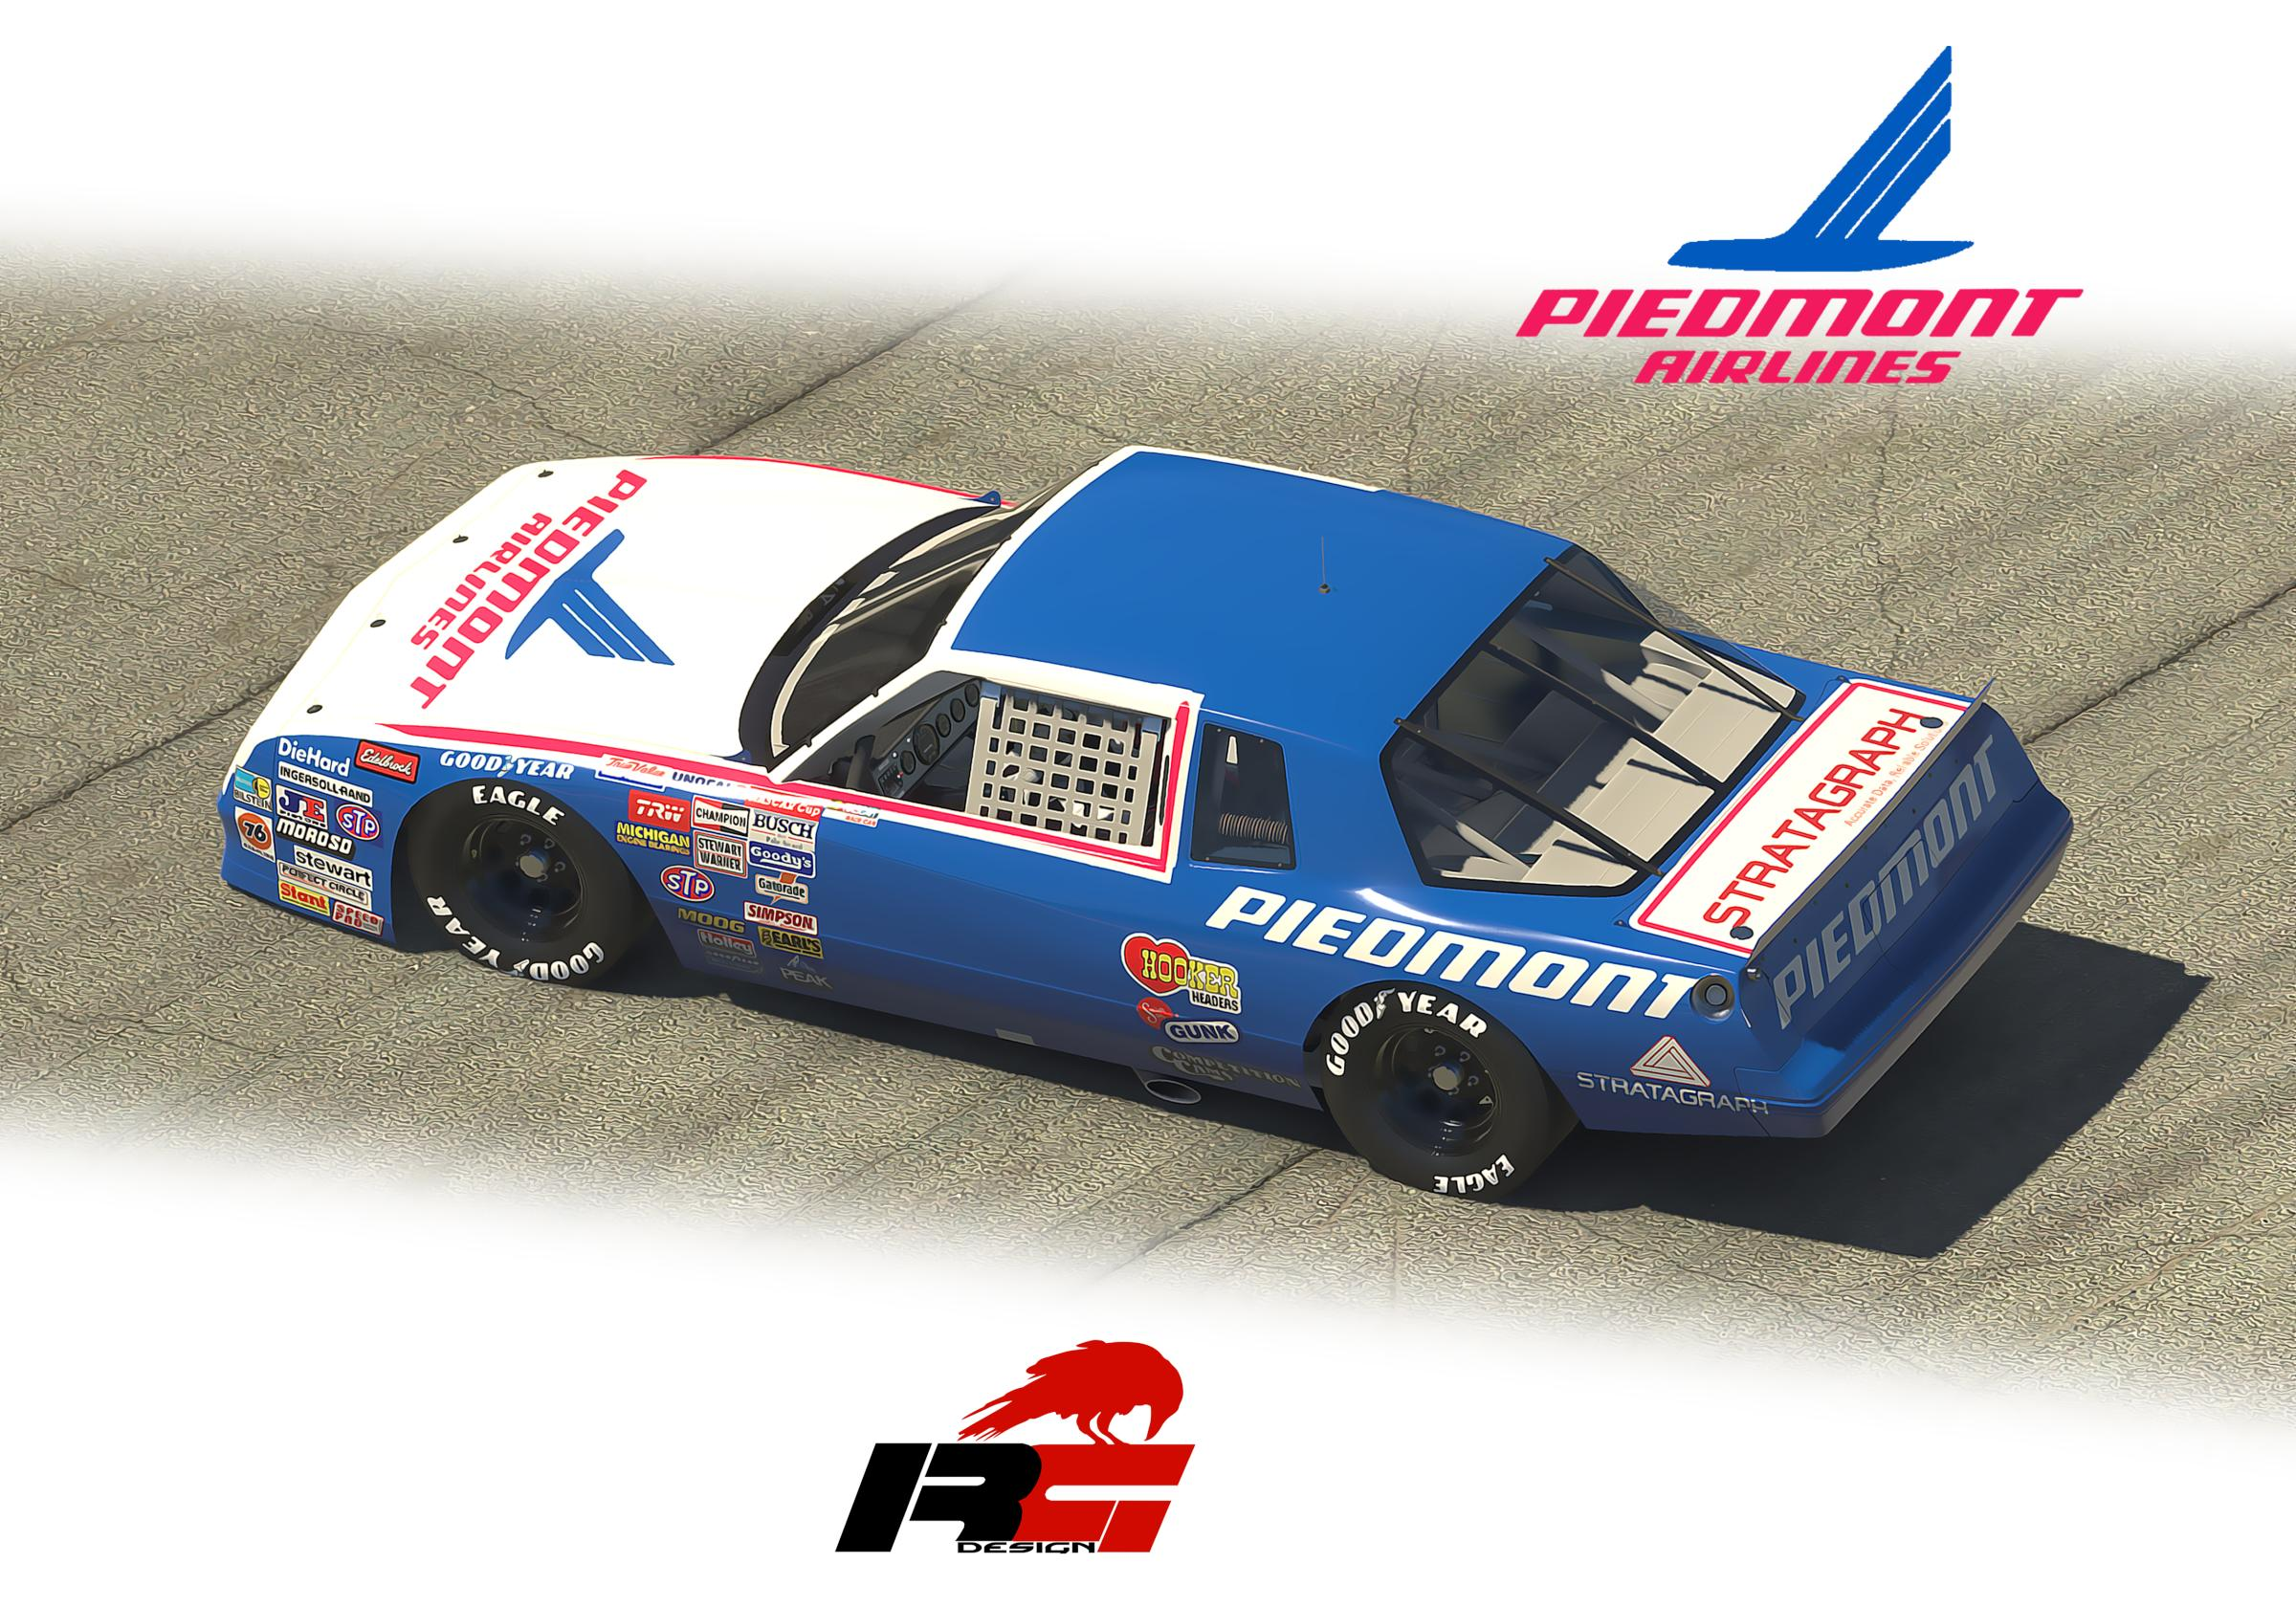 Preview of Piedmont Chevrolet Monte Carlo 1987 v3 by Doyle Lowrance